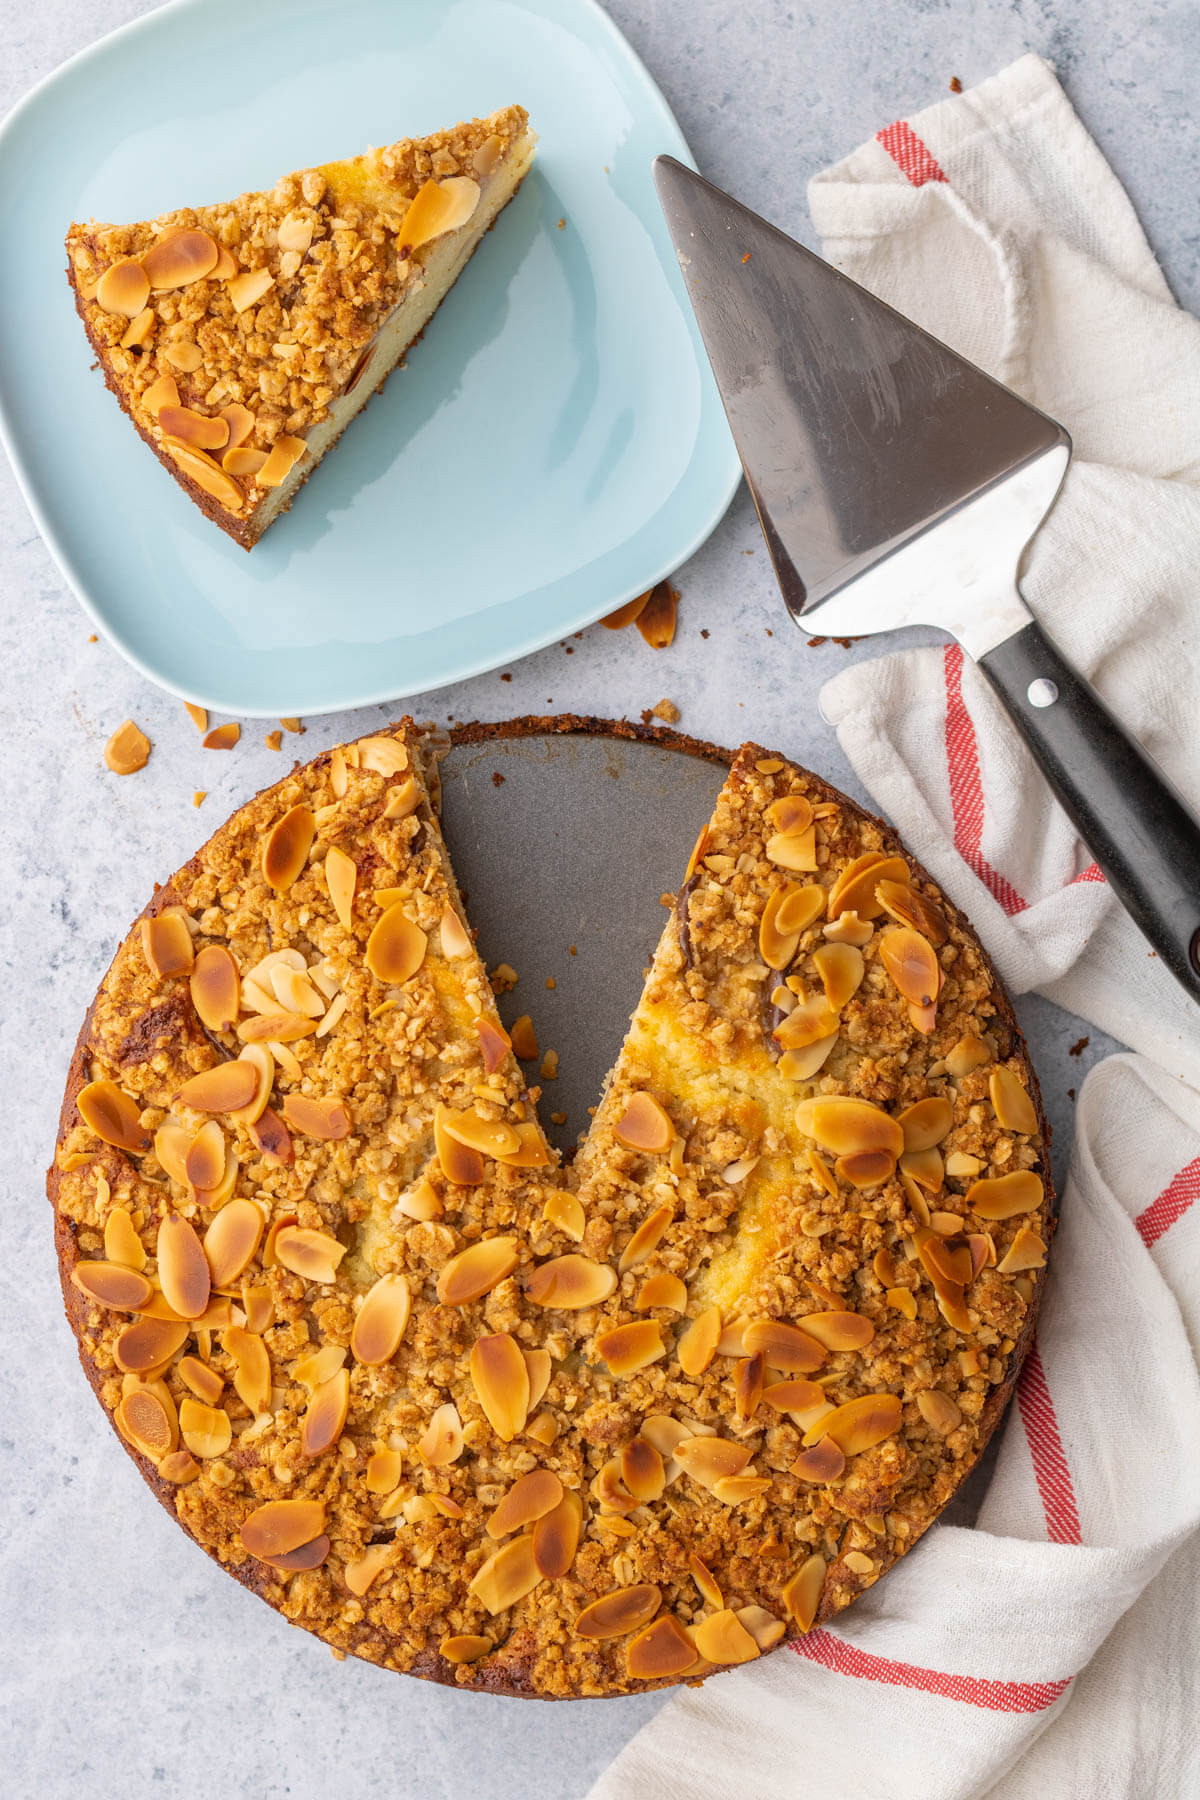 Overhead view of a golden almond crumble topped ricotta cake with a slice taken out.